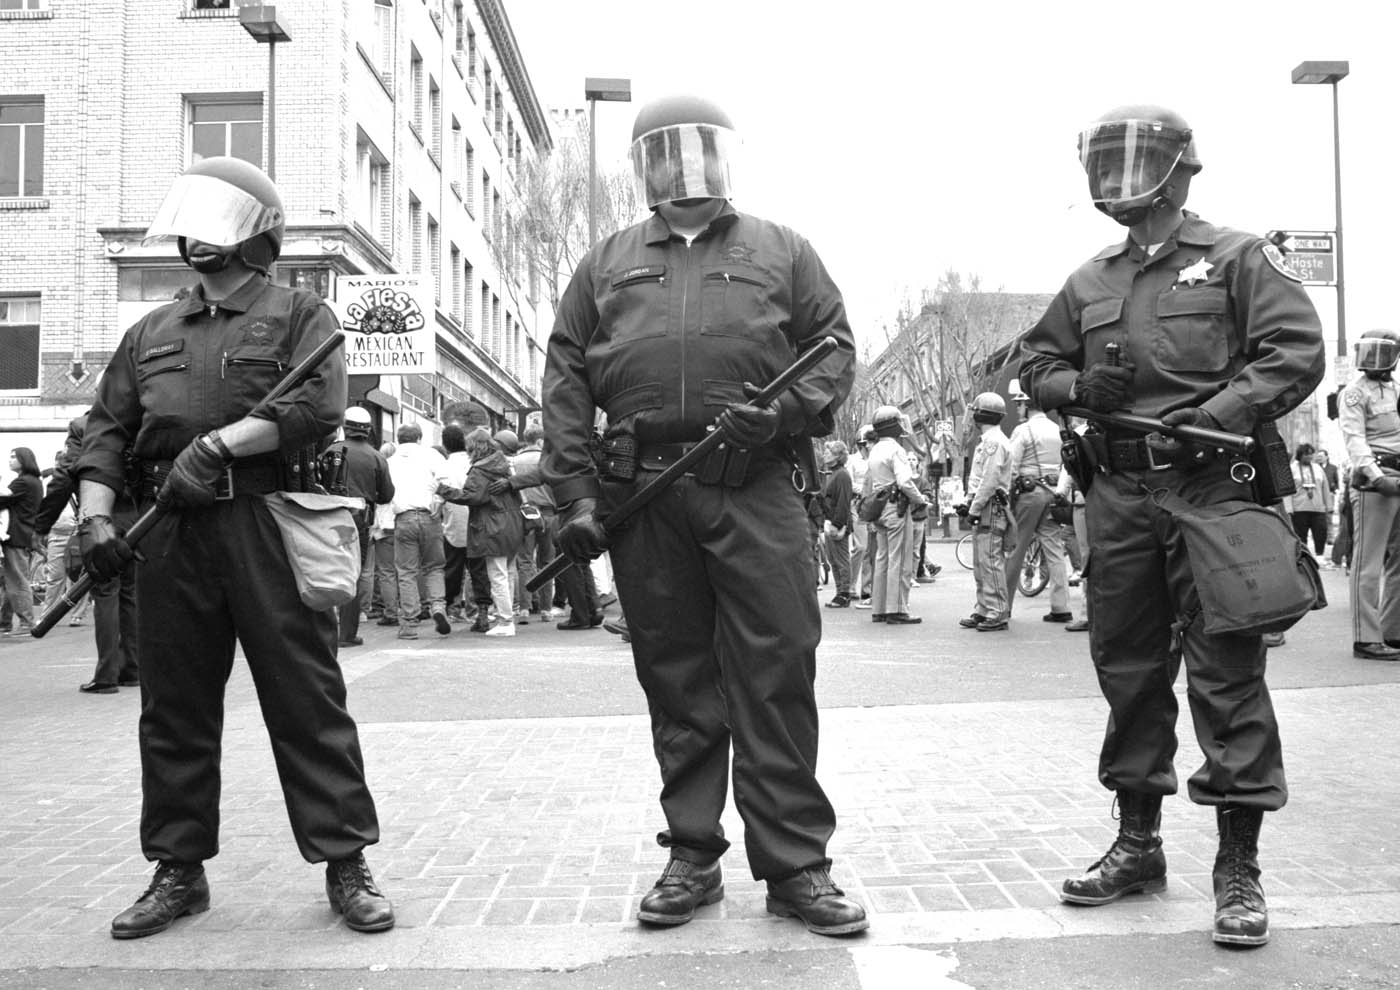 Telegraph and Dwight during the Berkeley People's Park riots, 1991.